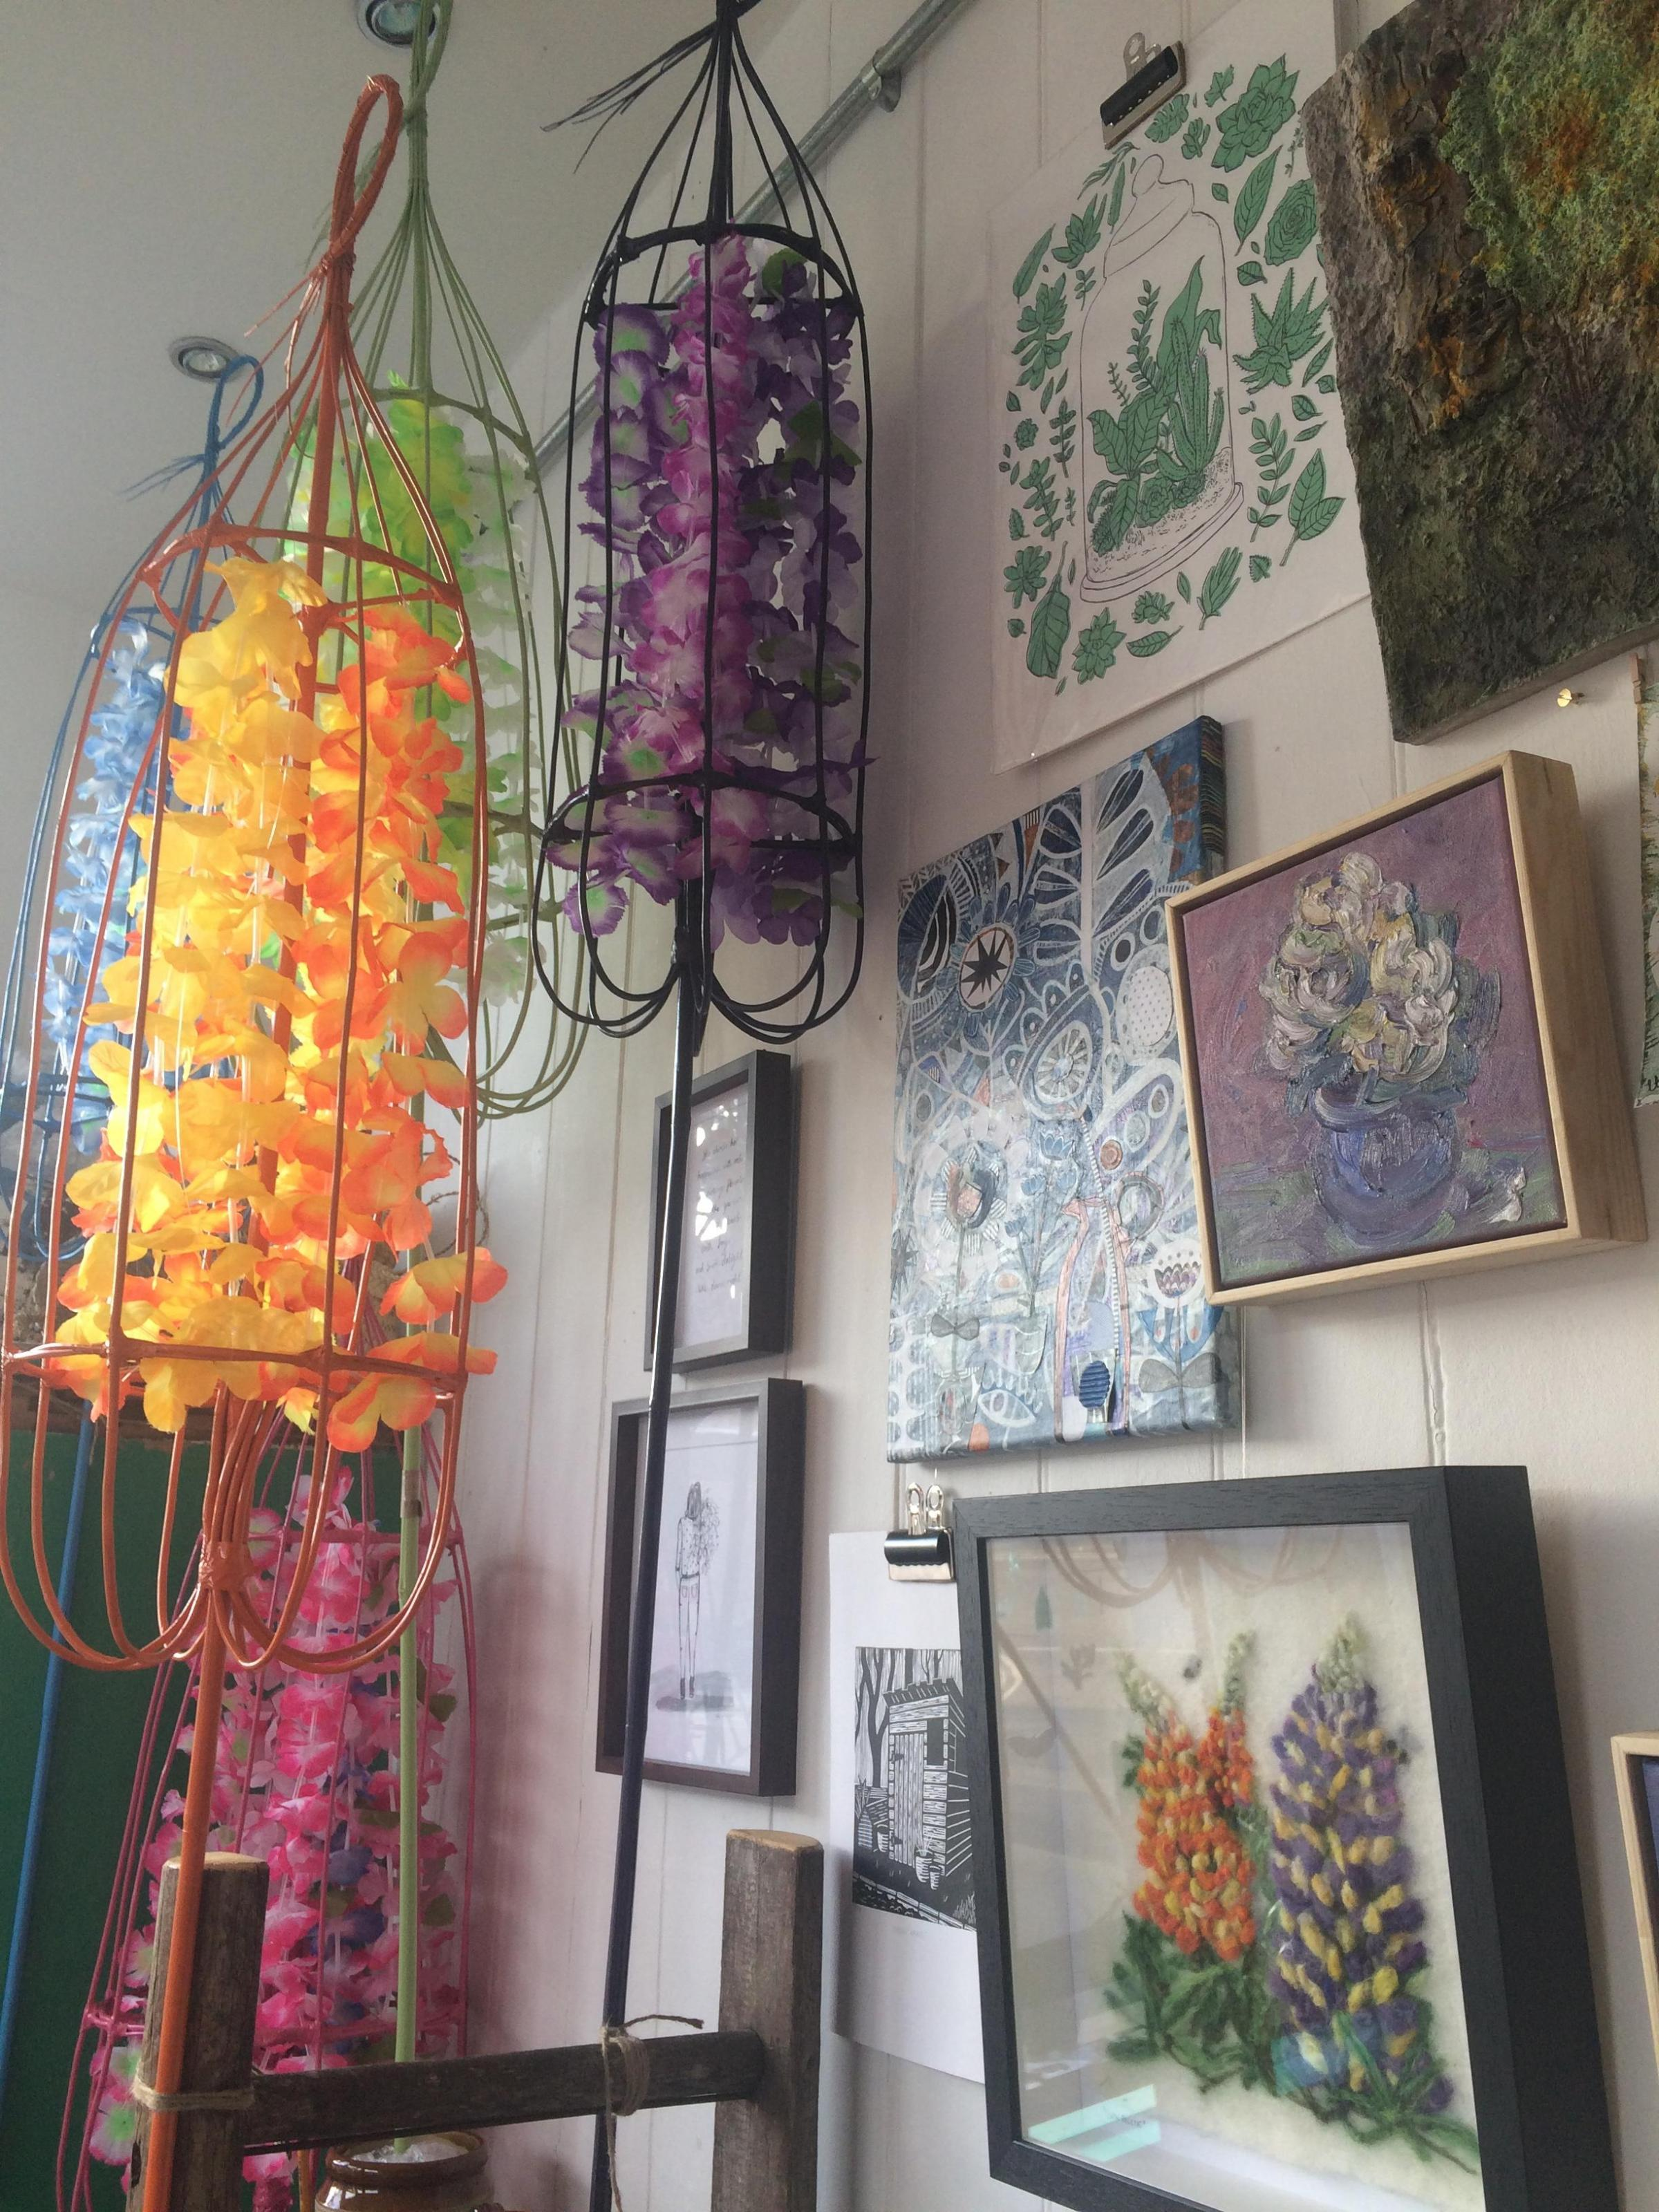 Exhibits in the Flourish show for Bloom! and beyond at Owl  & Monkey in Heslington Road, York